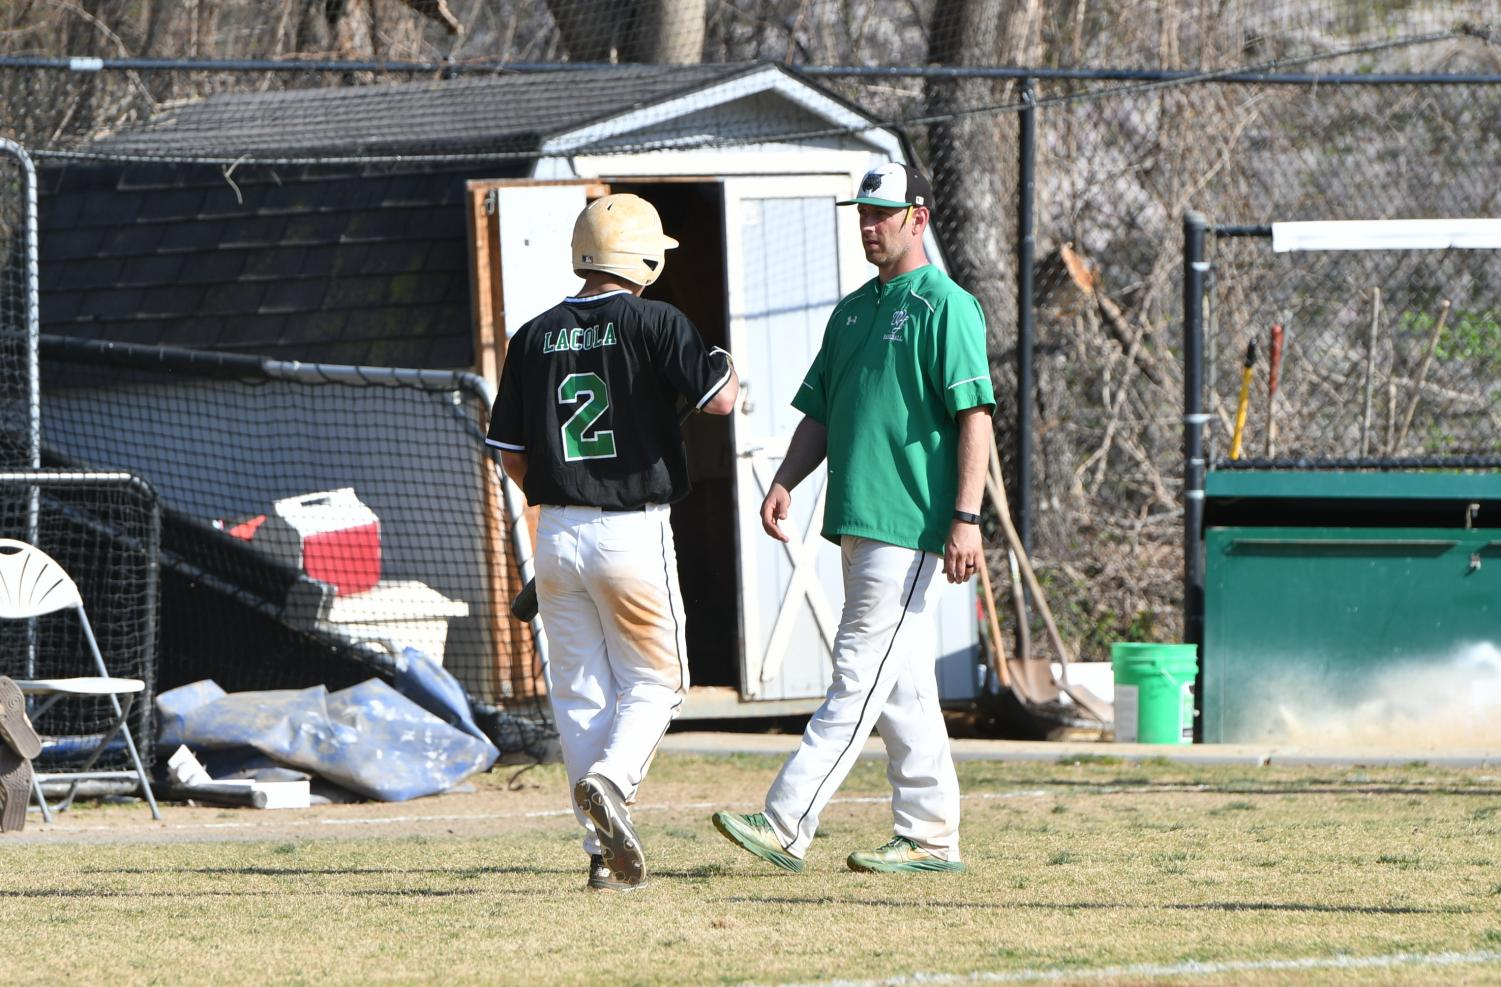 Junior outfielder Anthony Lacola converses with coach Steve Sutherland. WJ had a tough loss against Whitman in the first round 19-16. Courtesty of Lifetouch.